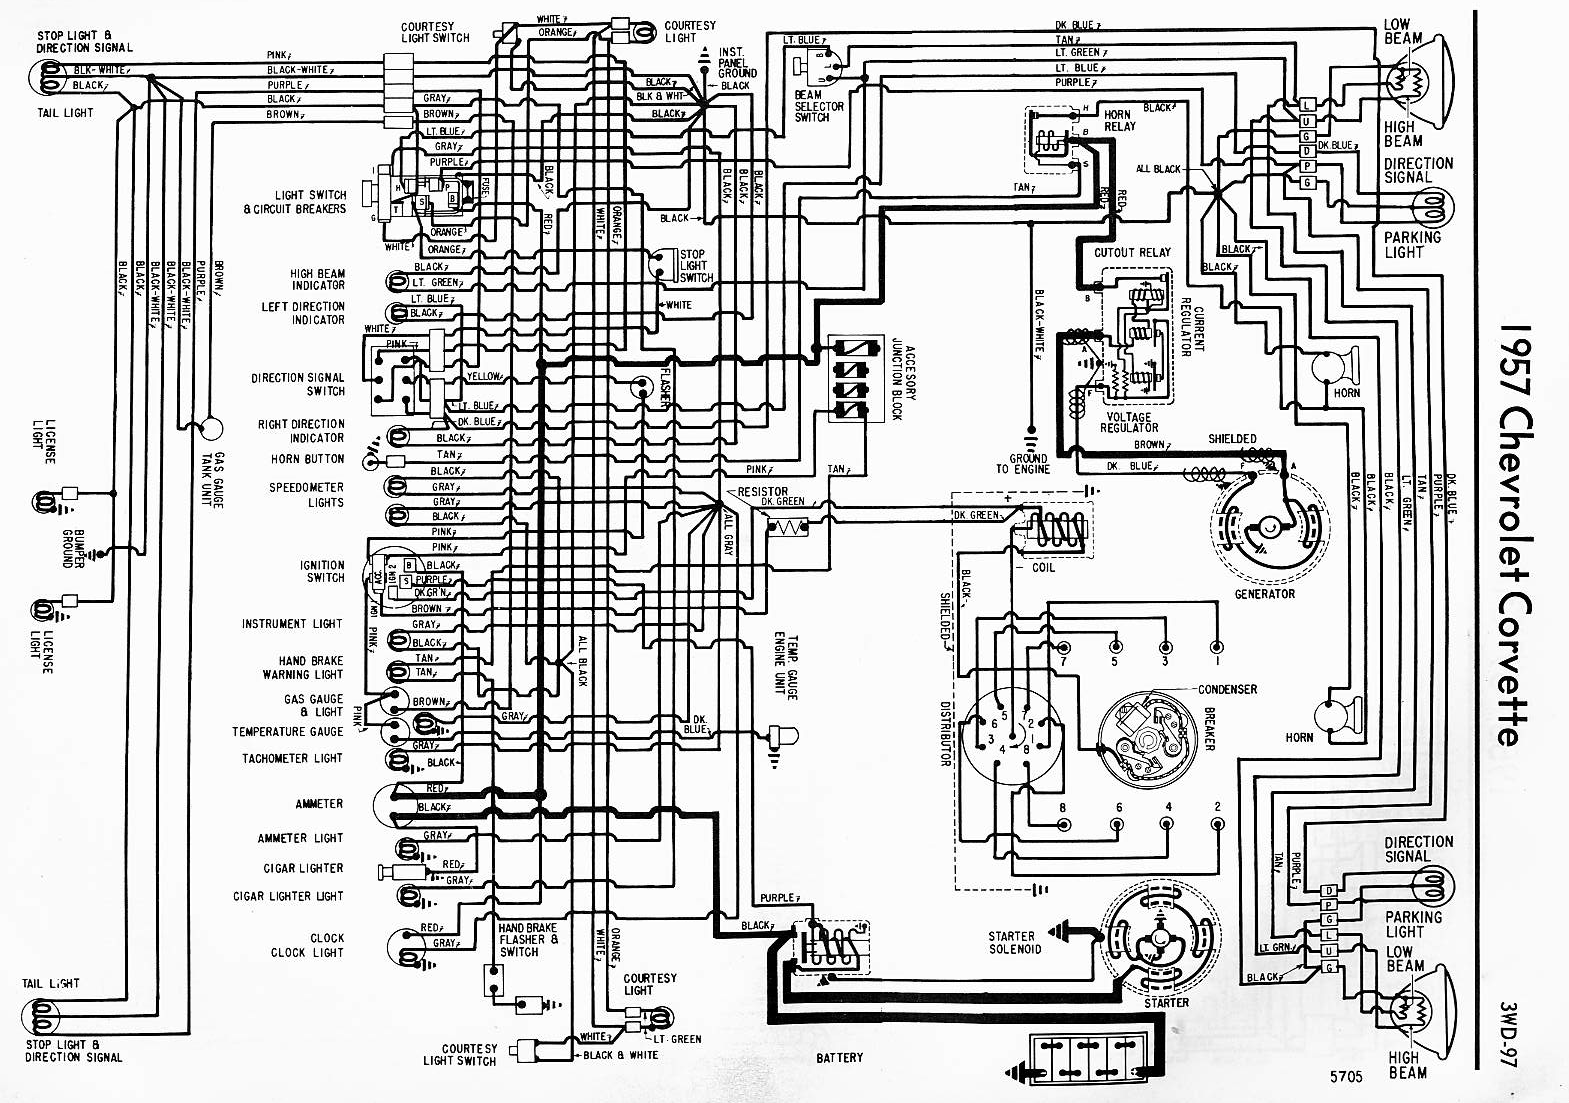 57 corvettte tracer schematic best one 1957 corvette wiring diagram willcox corvette, inc 1977 corvette wiring diagram at gsmportal.co